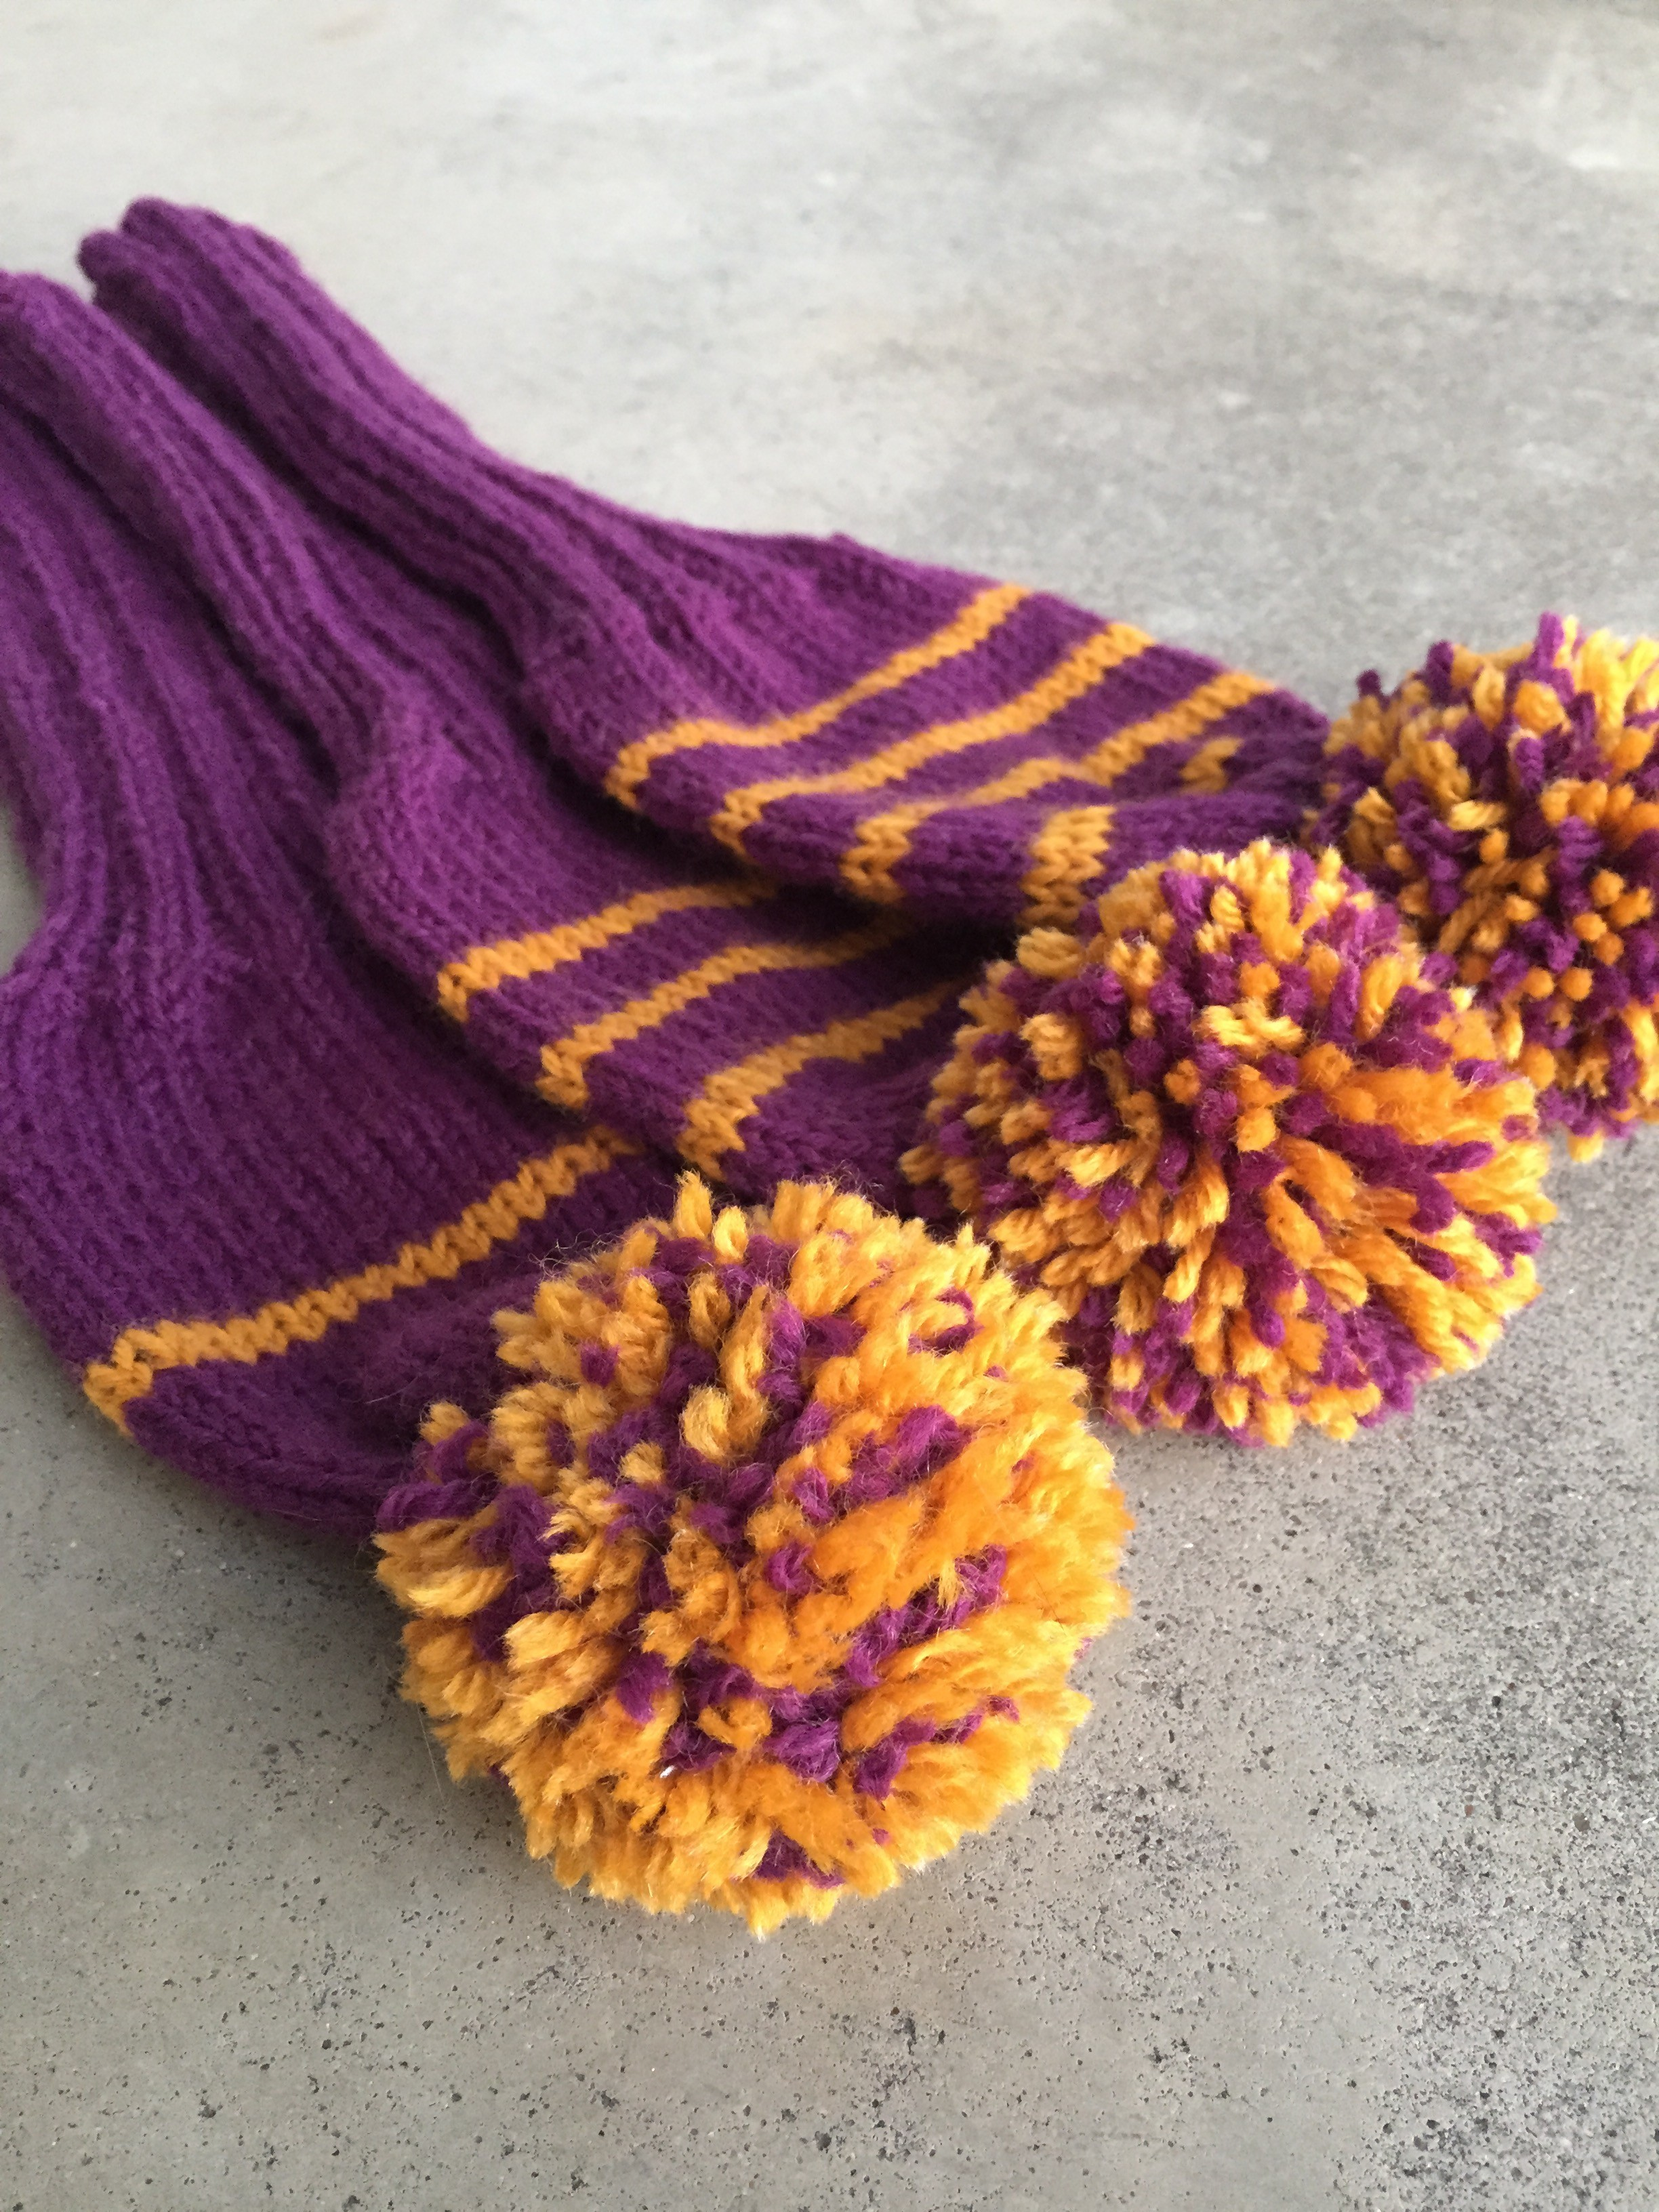 Handknit Golf Club Covers Made By Marni